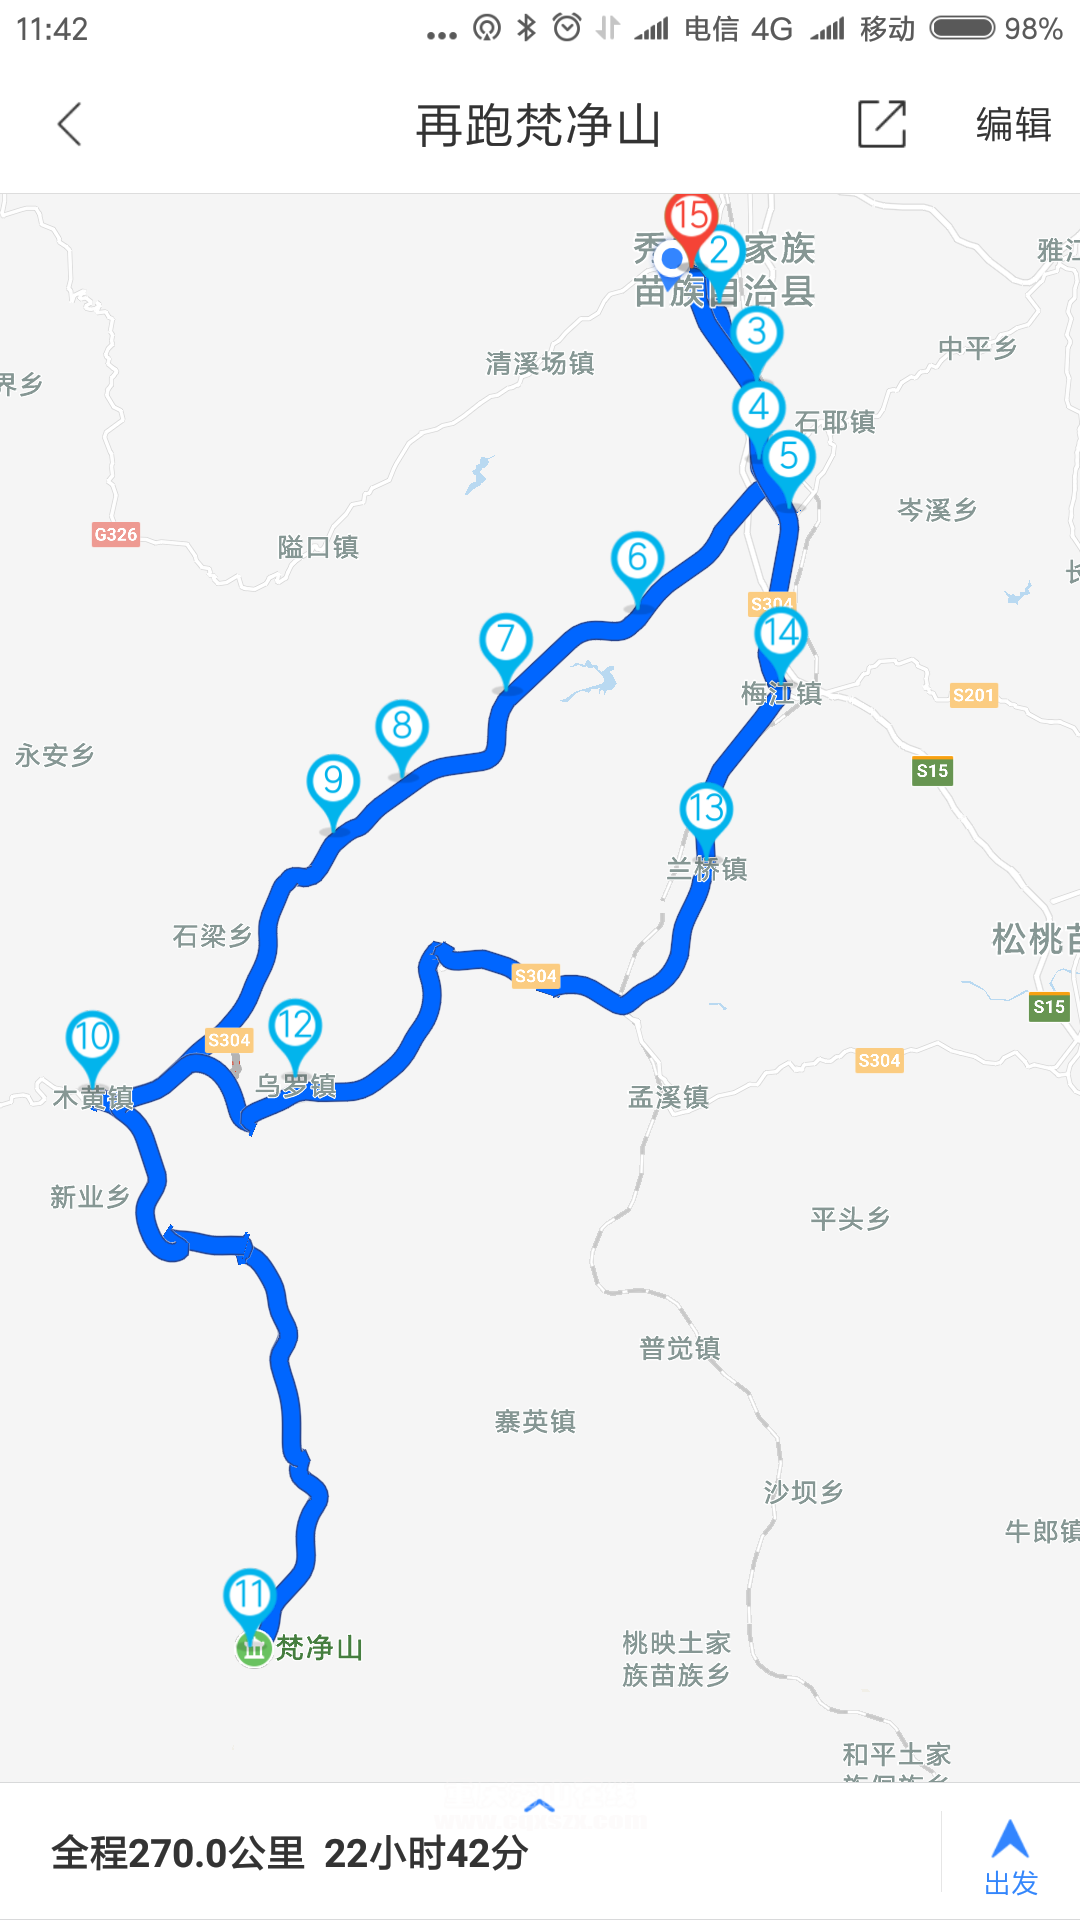 Screenshot_2018-05-22-11-42-10-340_com.baidu.Baid.png